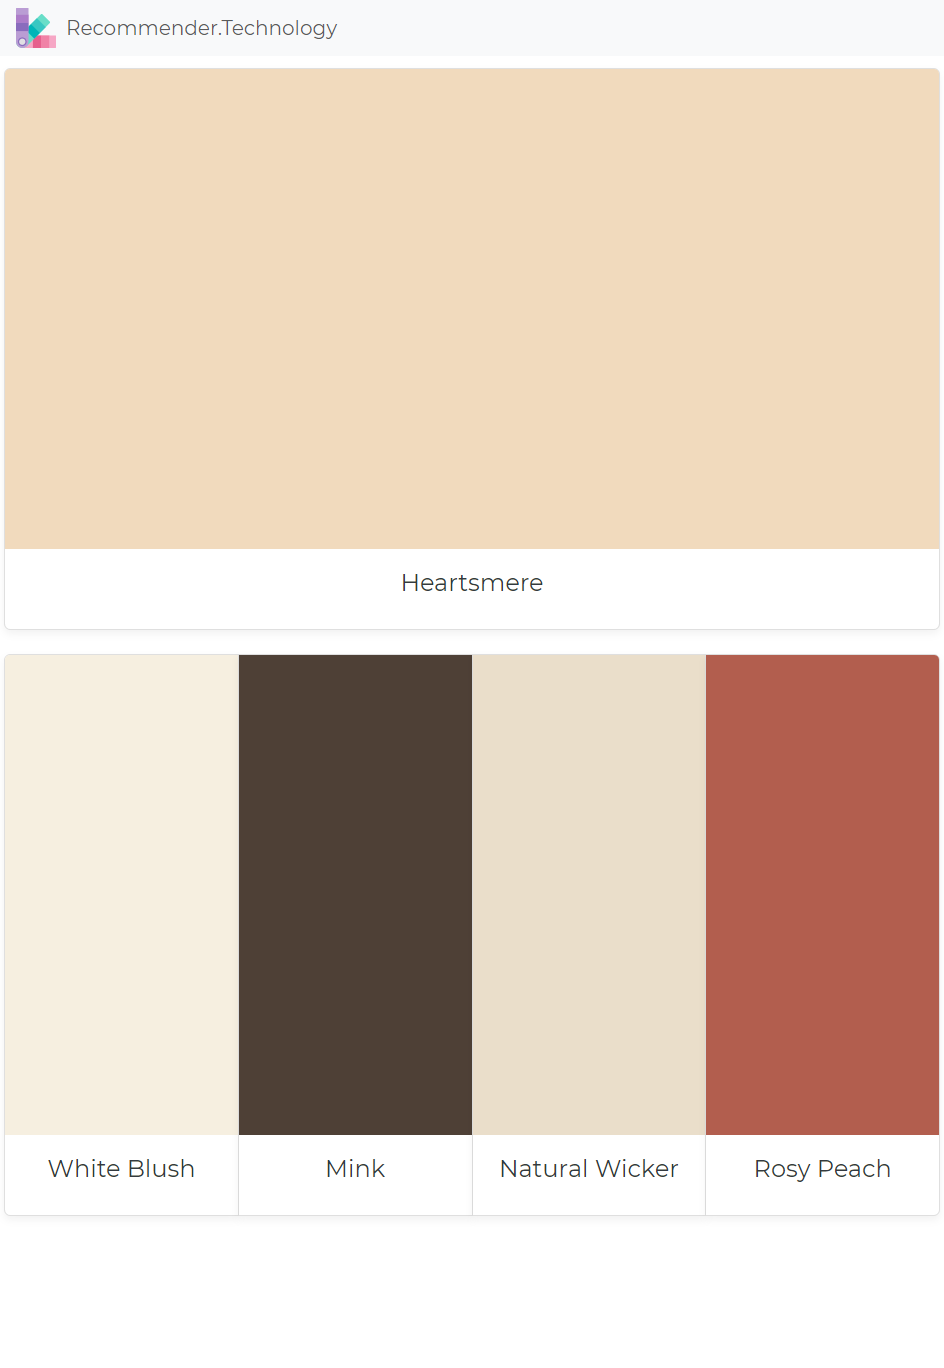 heartsmere white blush mink natural wicker rosy peach on benjamin moore interior paint chart id=43574